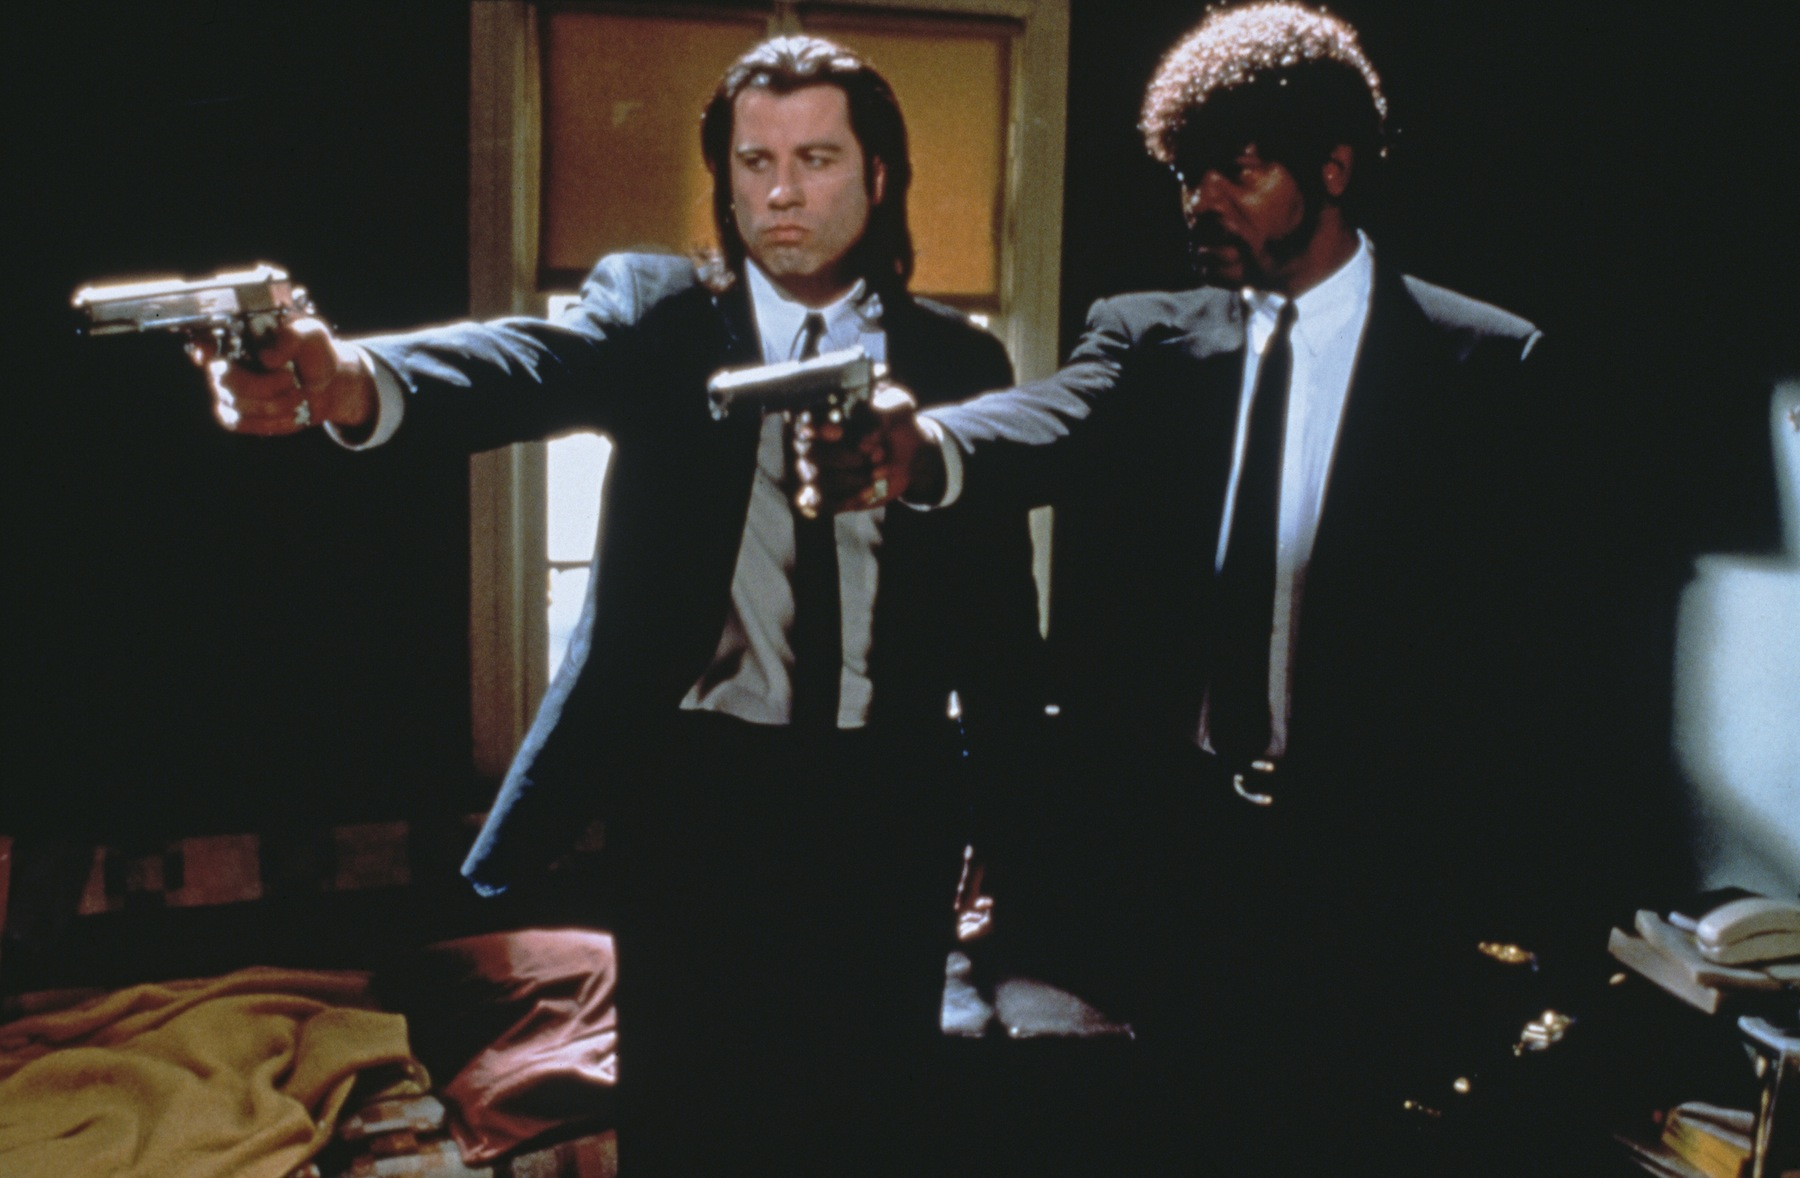 Pulp Fiction Movie Scene